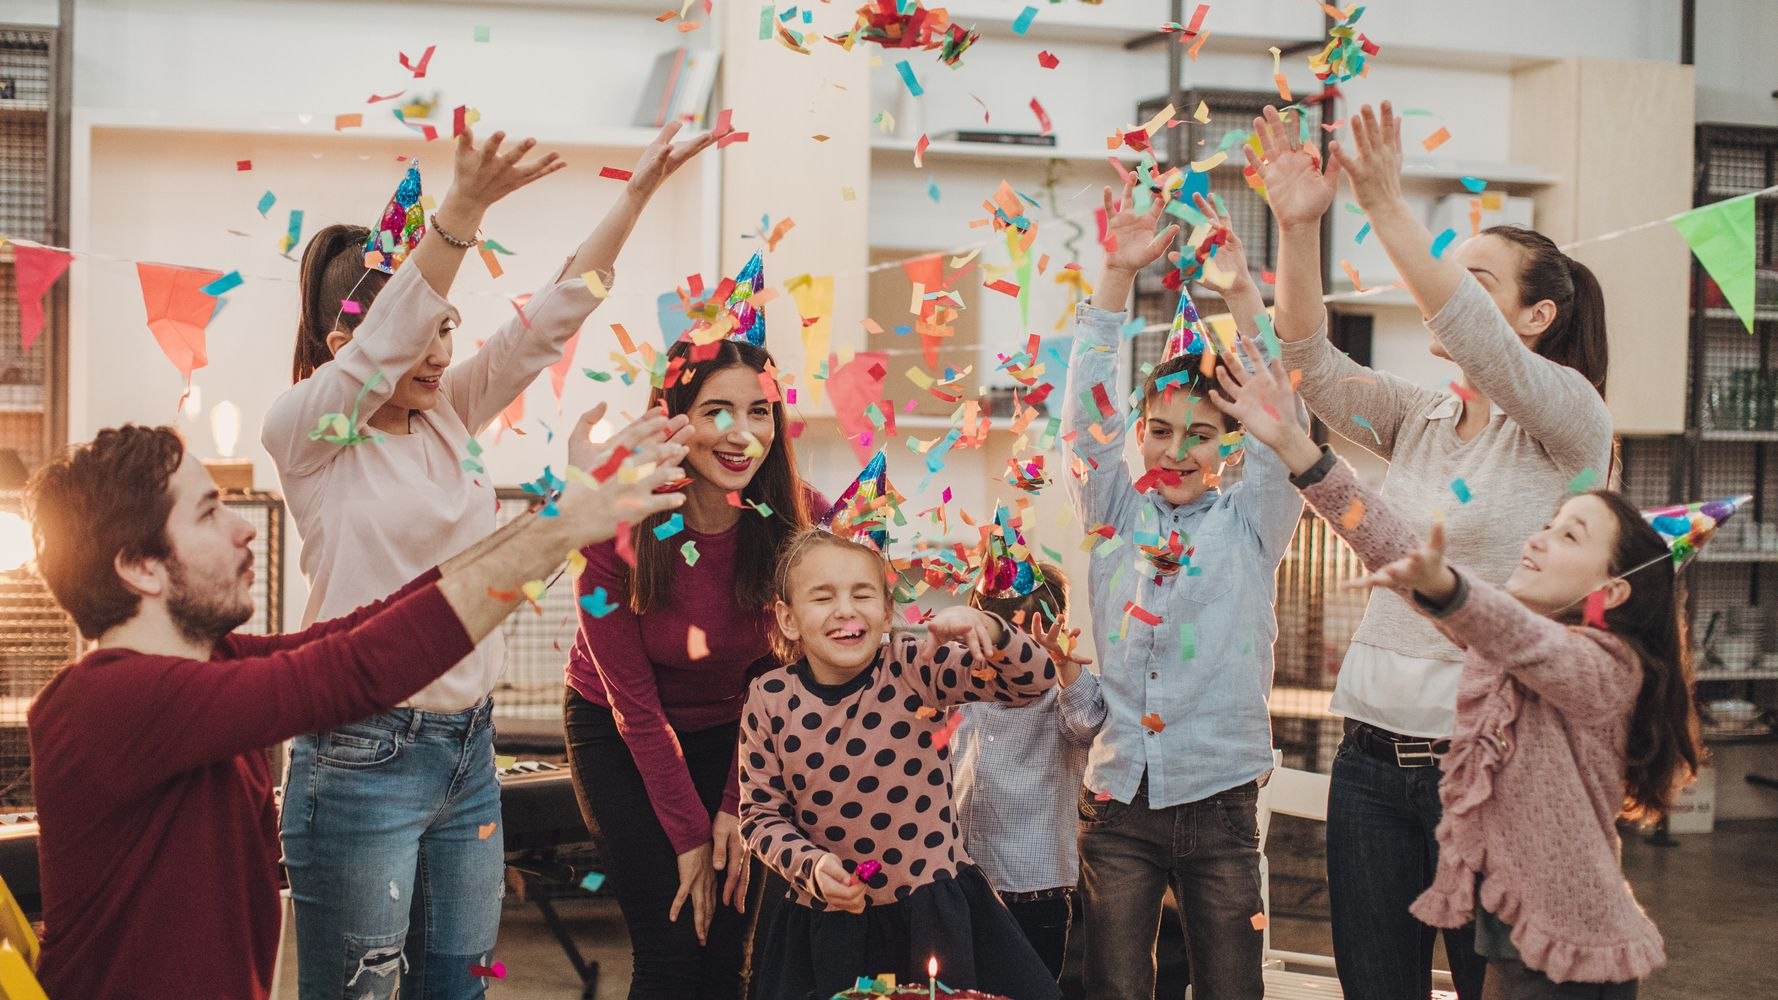 As Kids' Birthday Parties Get Fancier, Other Parents Are Being Asked To Foot The Bill